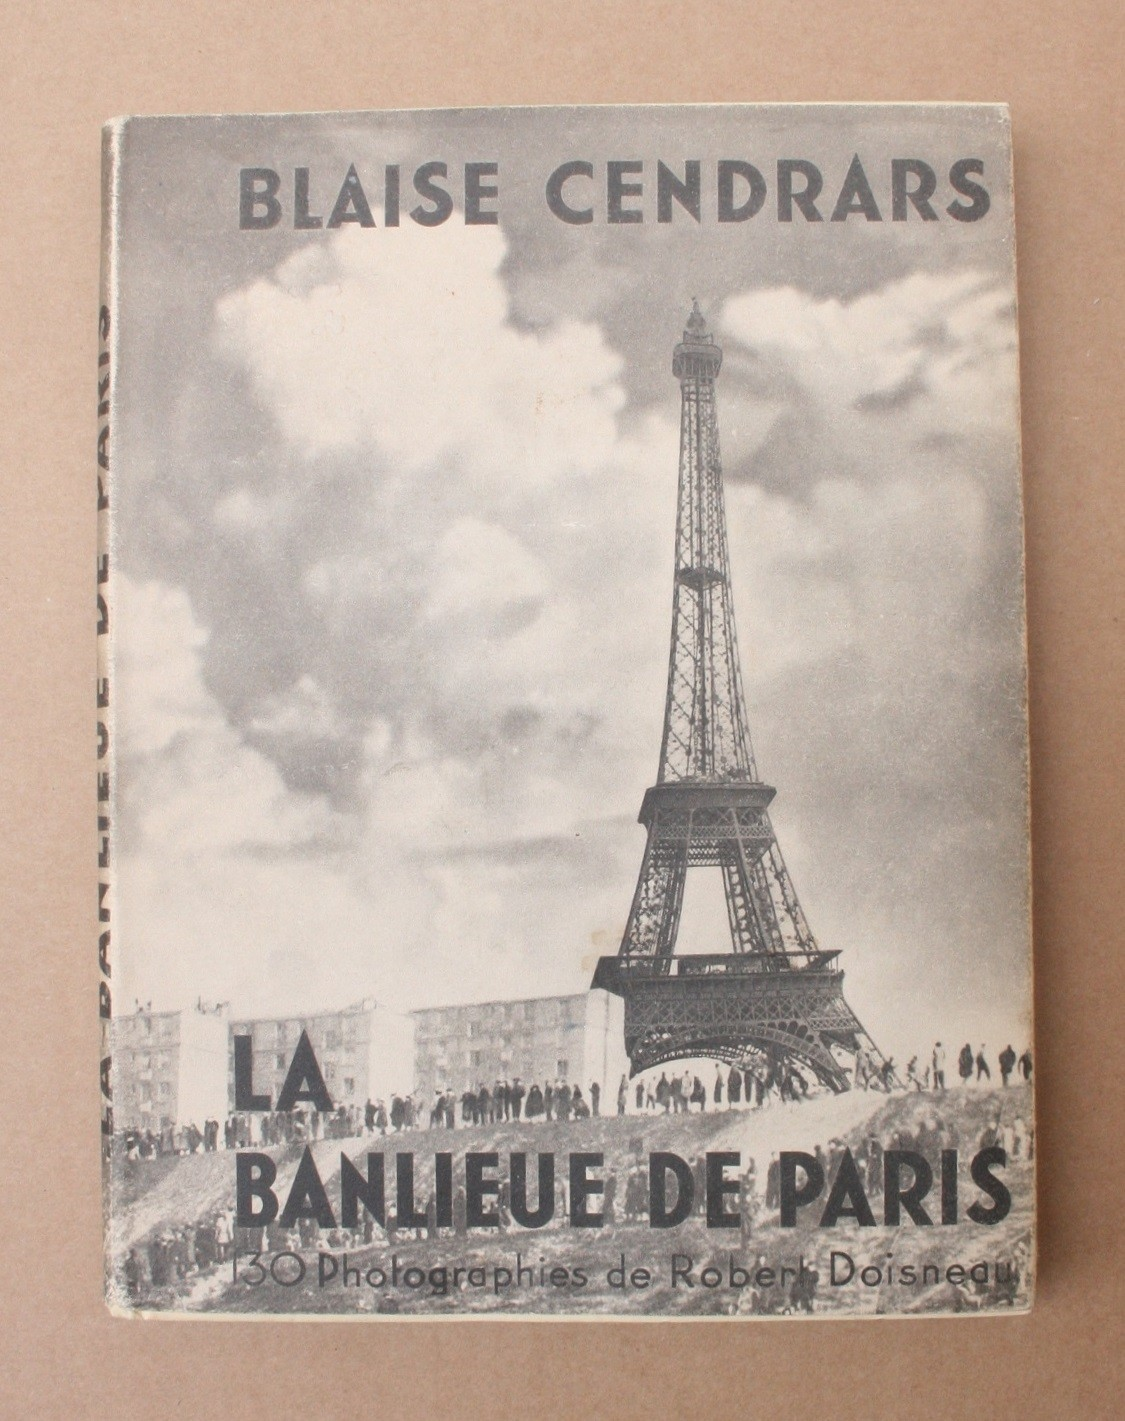 La Banlieue De Paris By Robert Doisneau And Blaise Cendrars